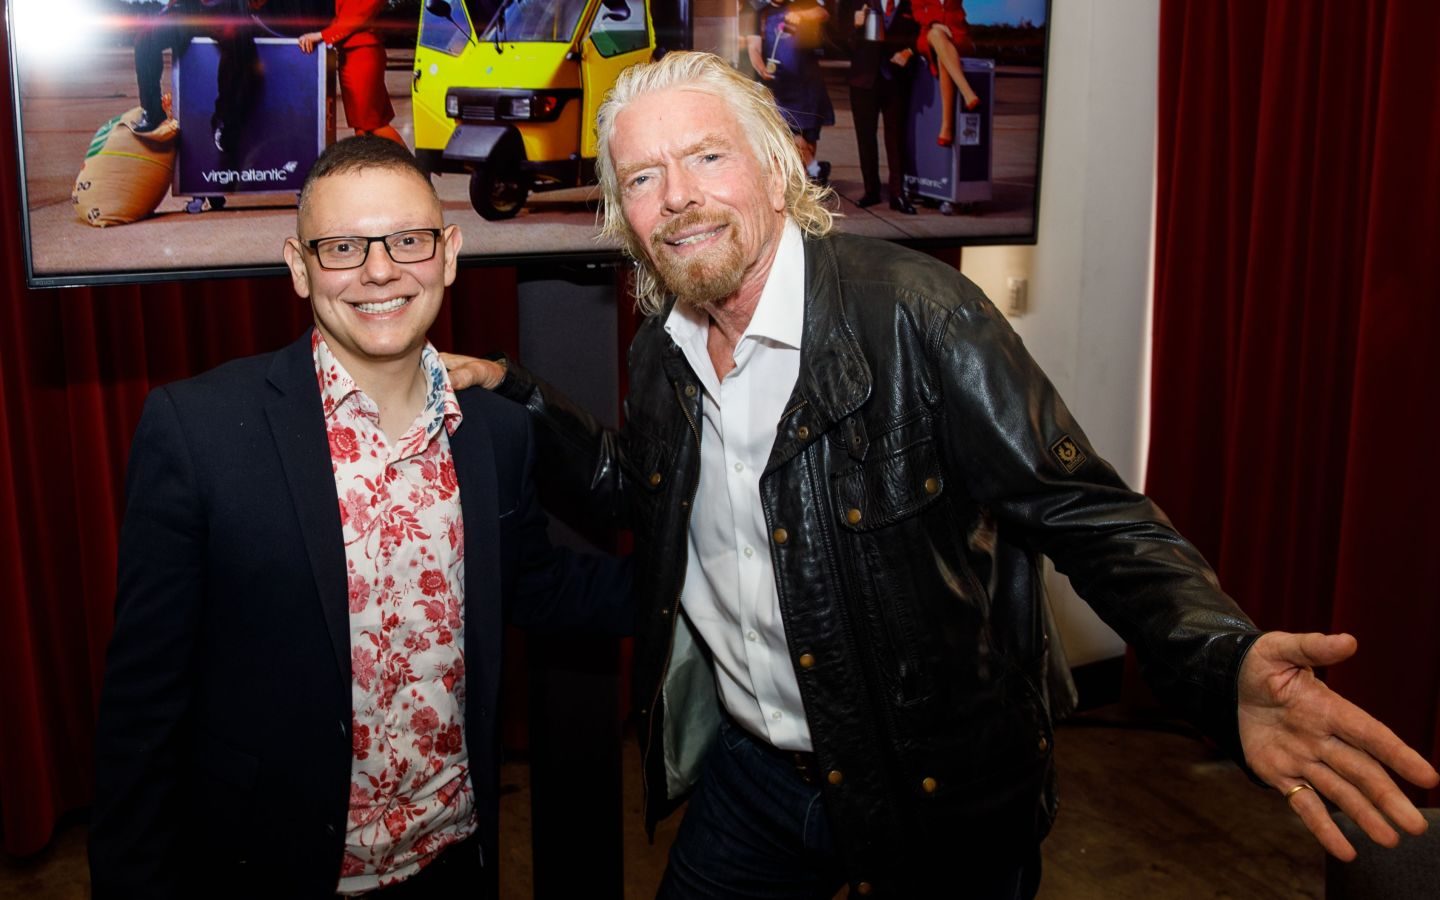 Change Please founder Cemal Ezel with Richard Branson